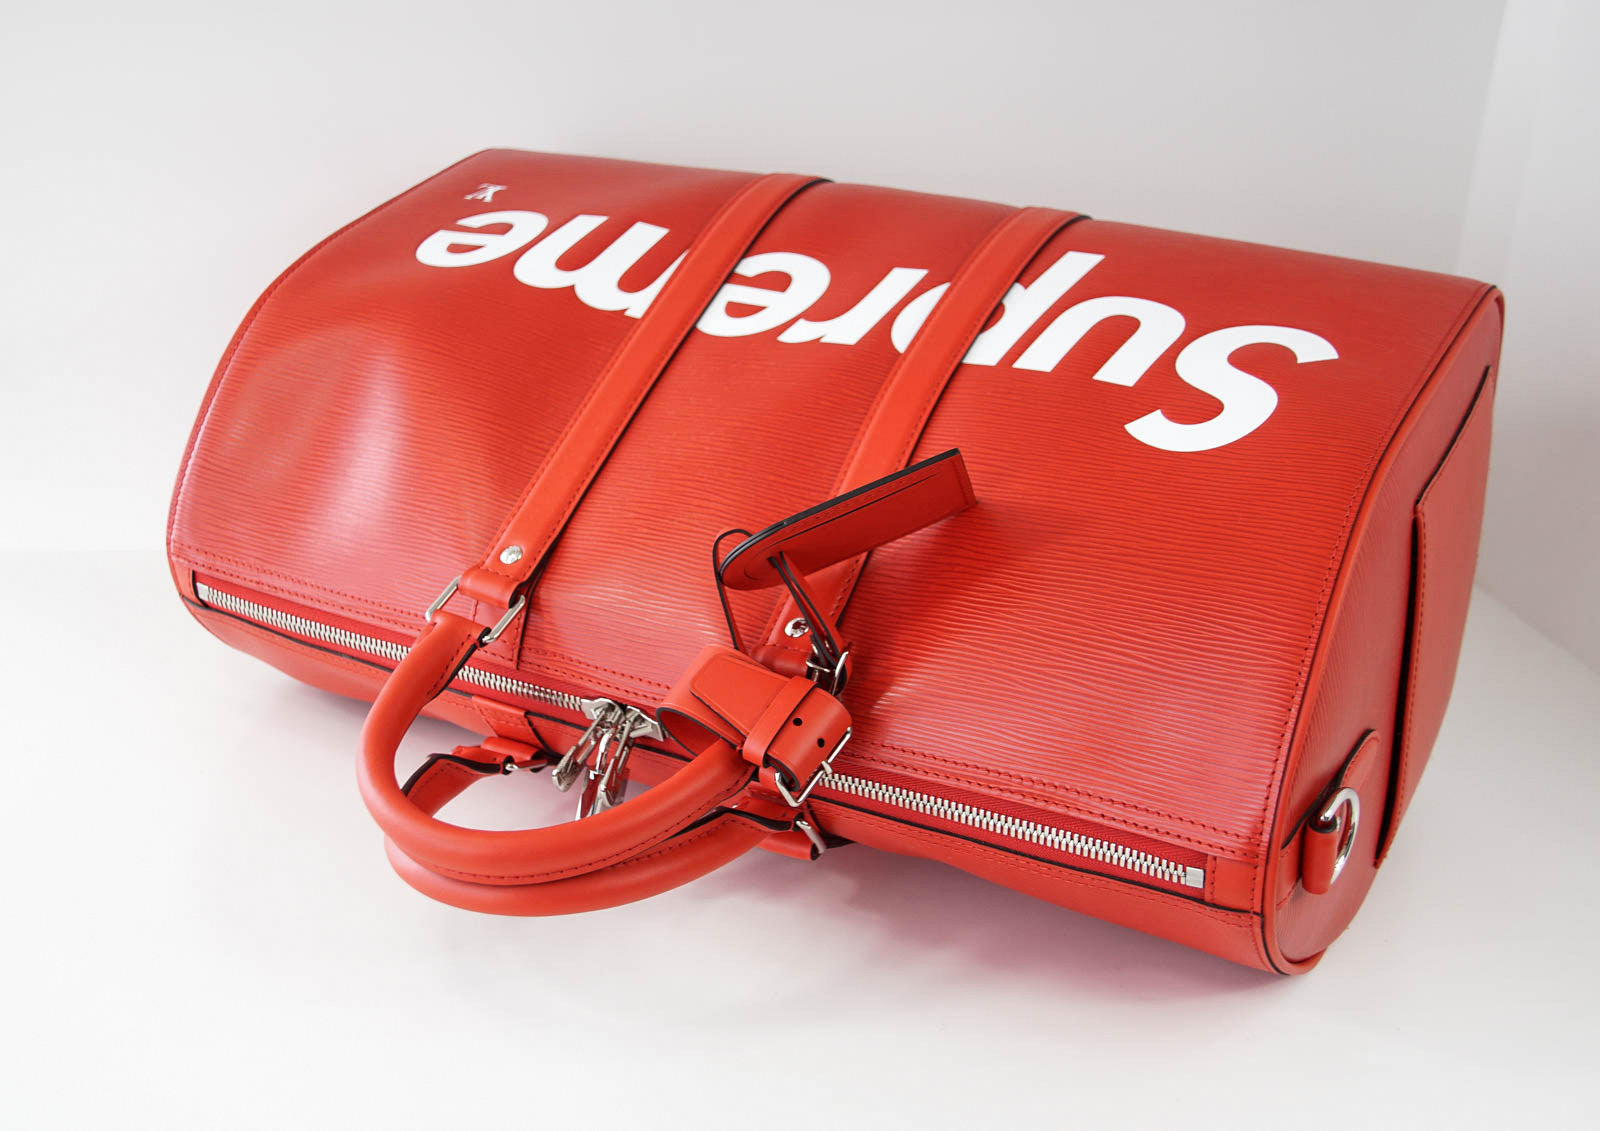 c4b9df63c14 ... Load image into Gallery viewer, Louis Vuitton X Supreme Red Epi Keepall  Bandouliere Duffle Bag ...